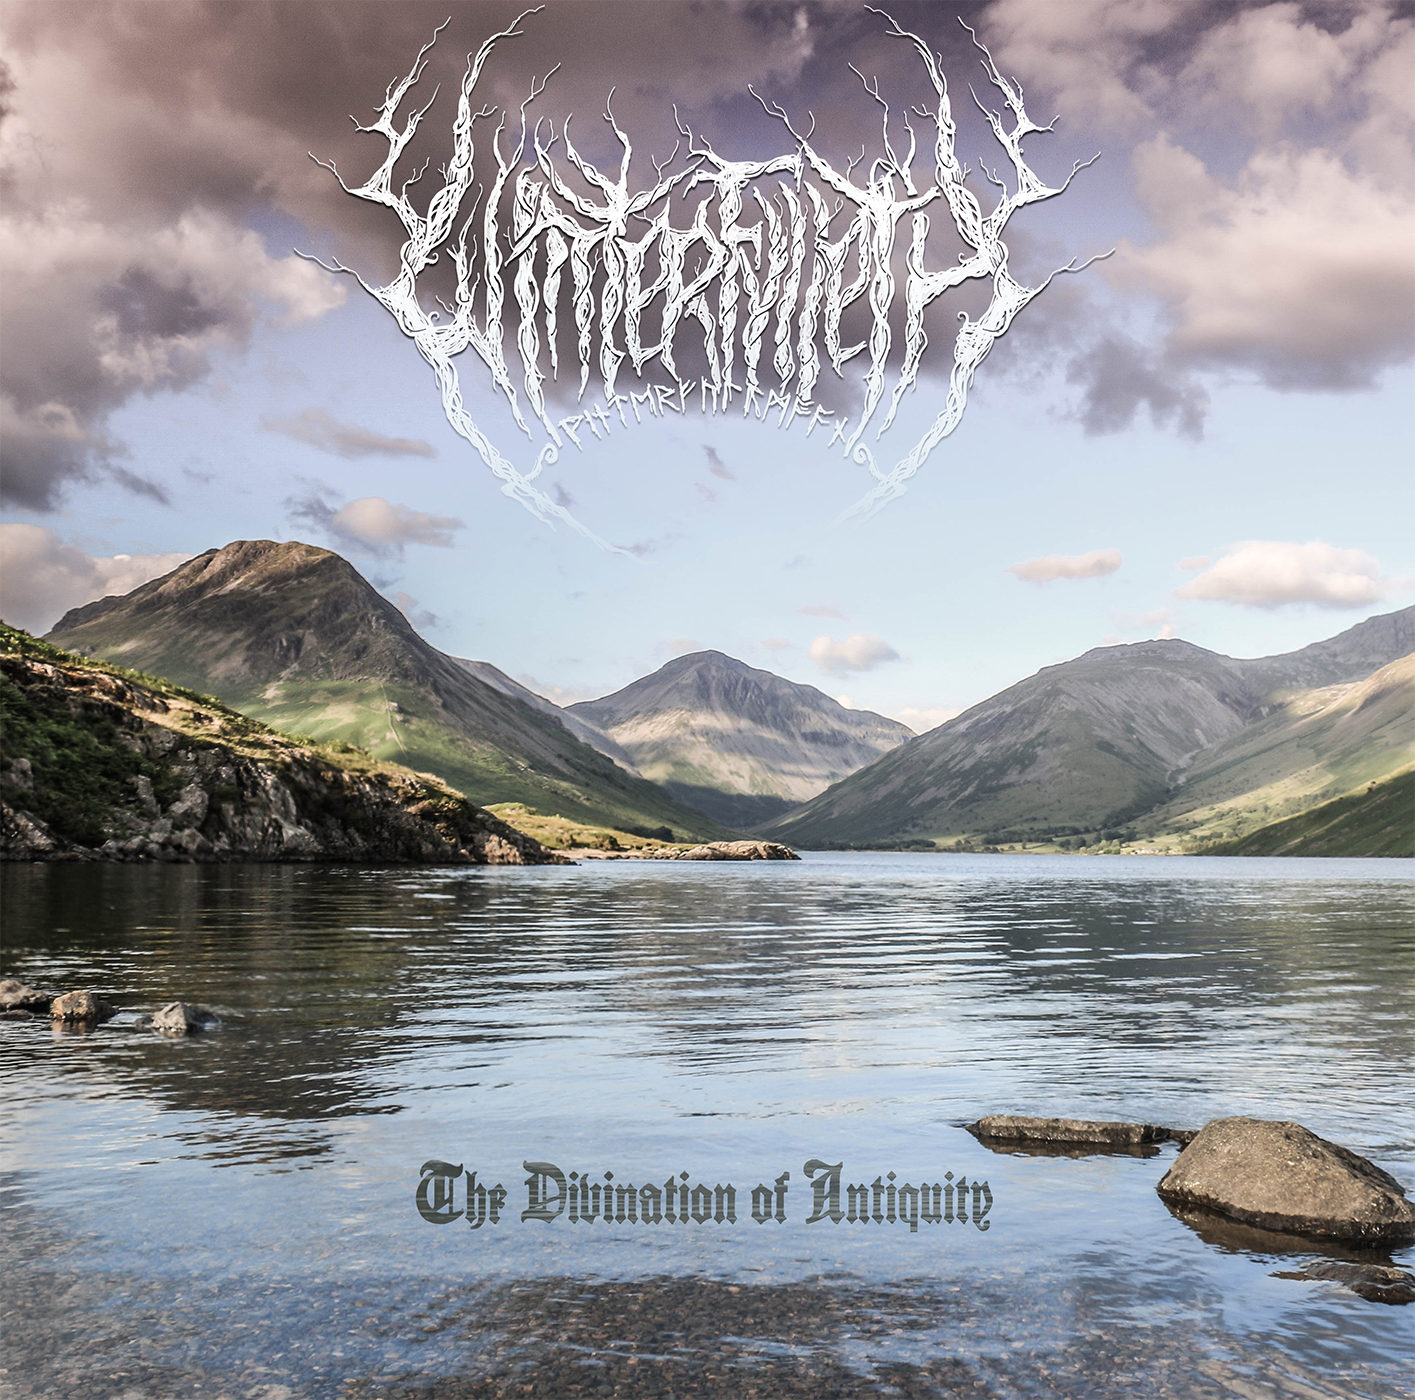 Winterfylleth – The Divination of Antiquity Review